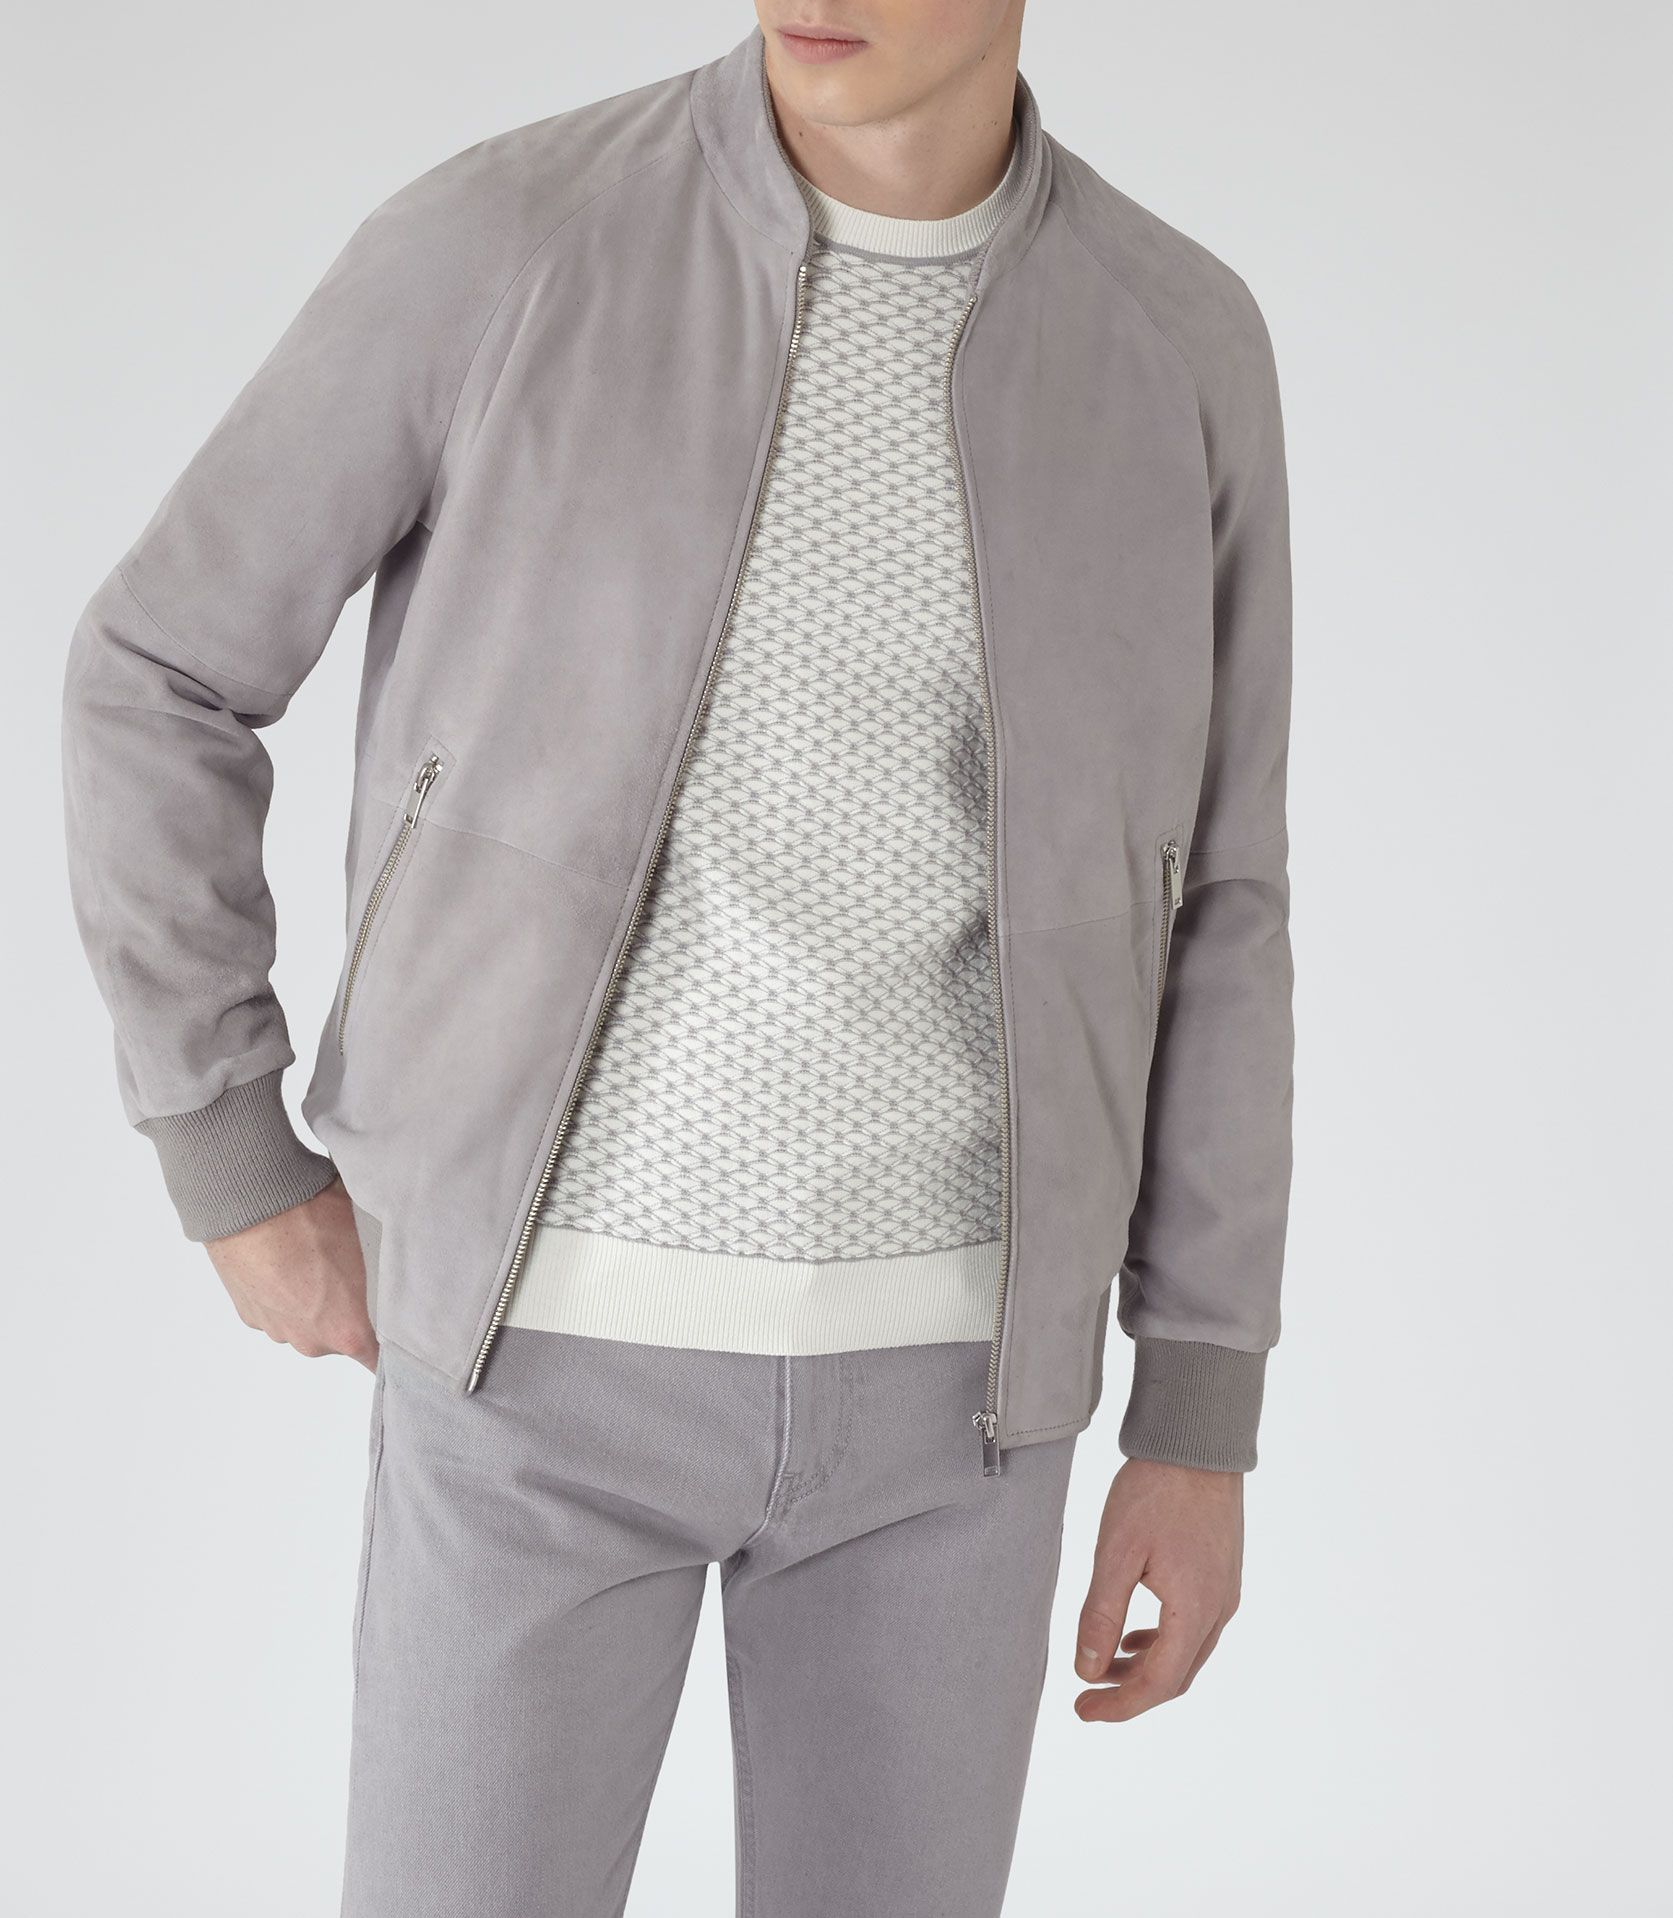 35d7d6b8d Mens Grey Suede Bomber Jacket - Reiss Toulon | Spring/Summer Fashion ...